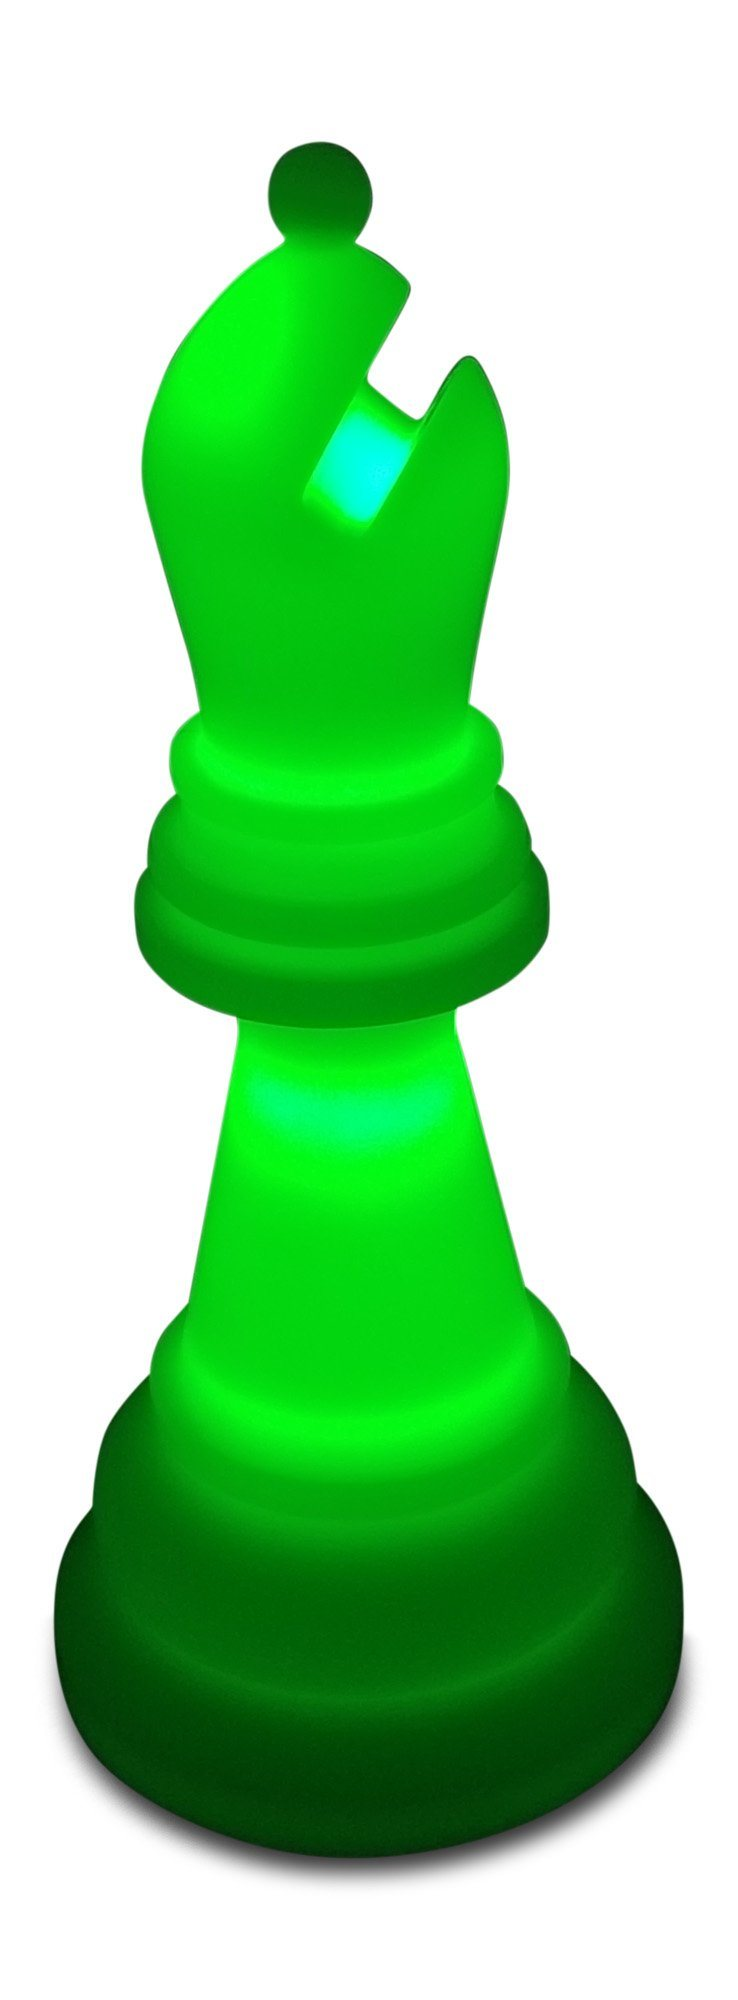 MegaChess 28 Inch Premium Plastic Bishop Light-Up Giant Chess Piece - Green | Default Title | GiantChessUSA